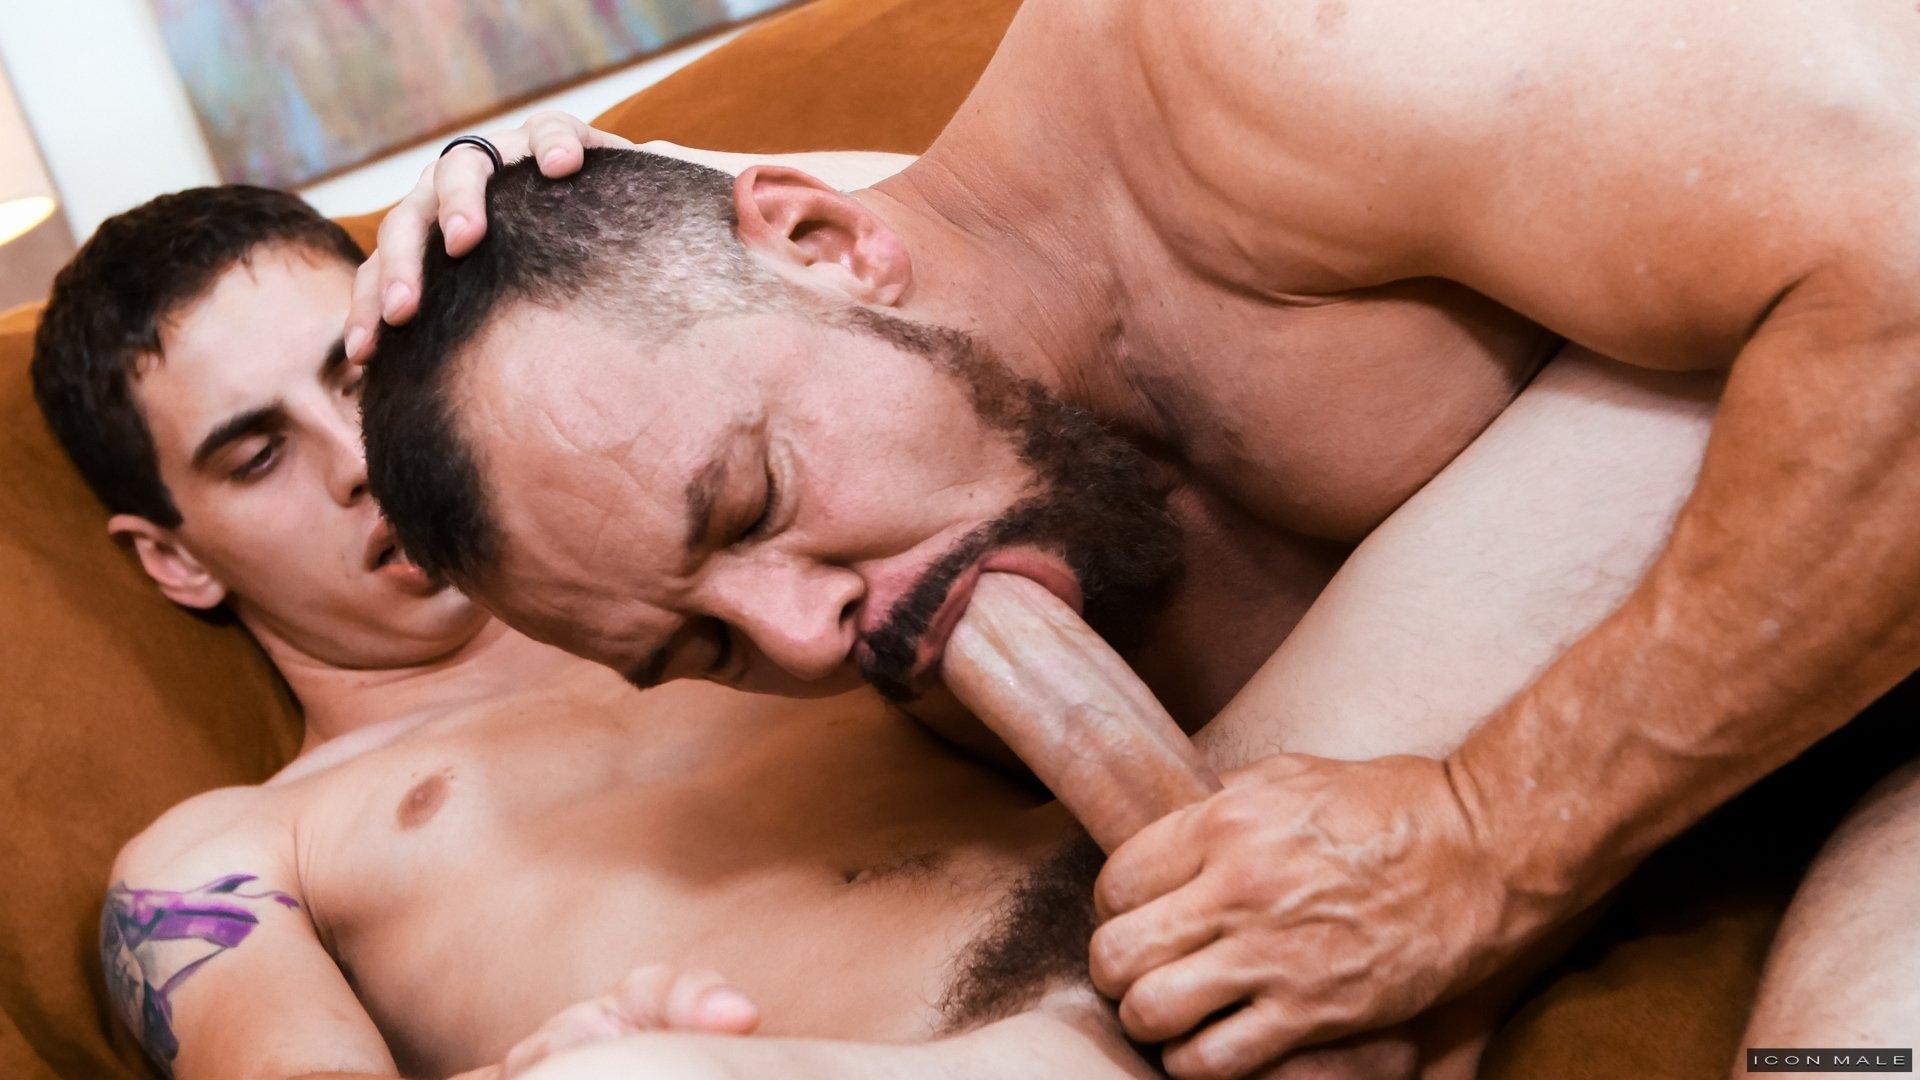 two beefy latino men making out gay